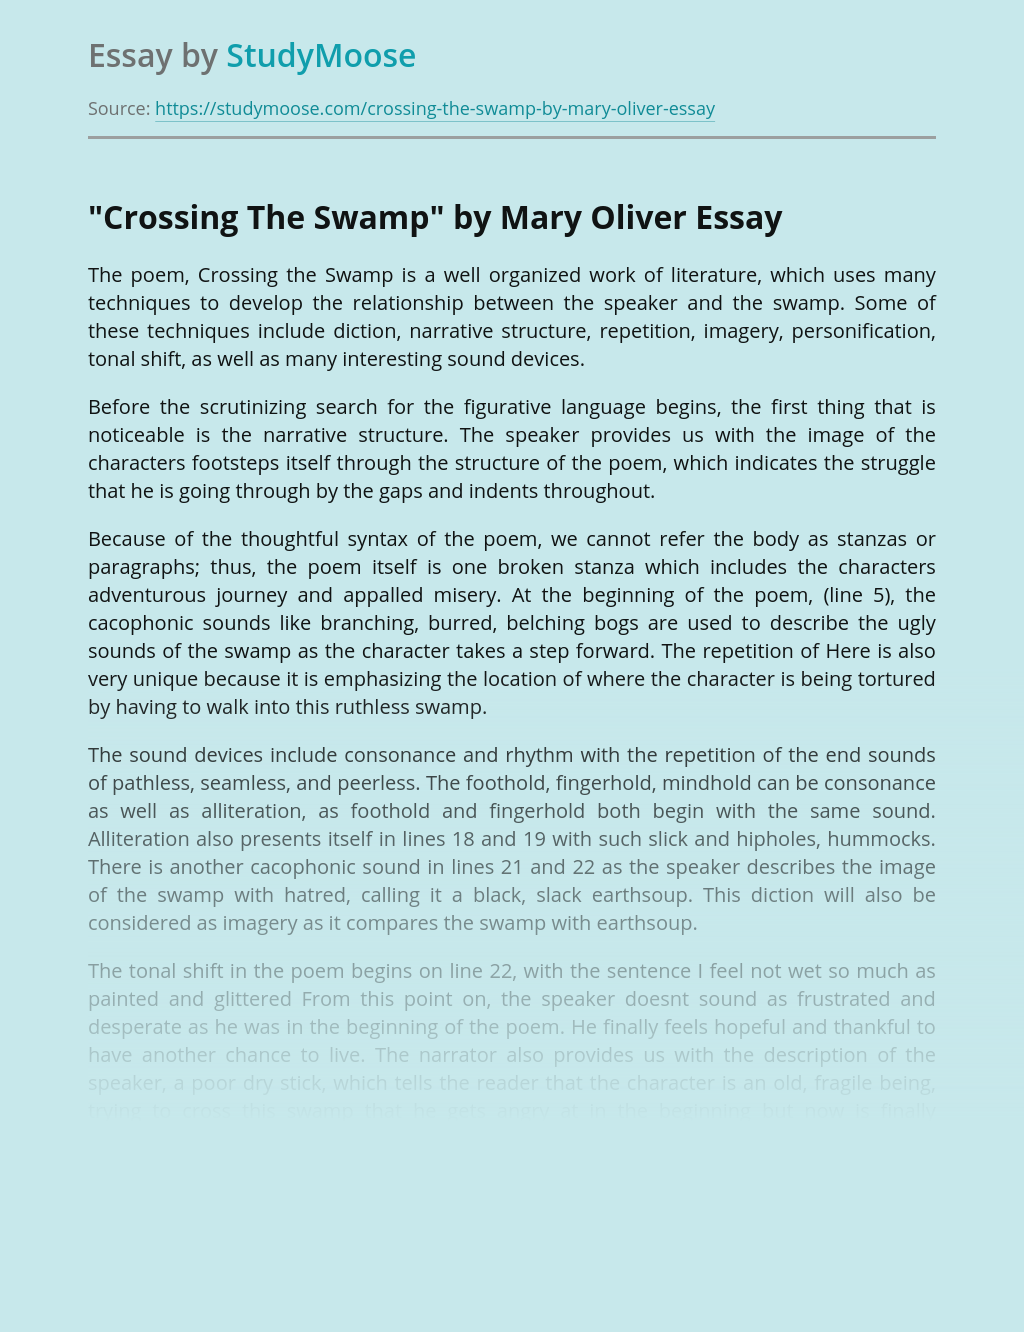 """Crossing The Swamp"" by Mary Oliver Poem Analysis"